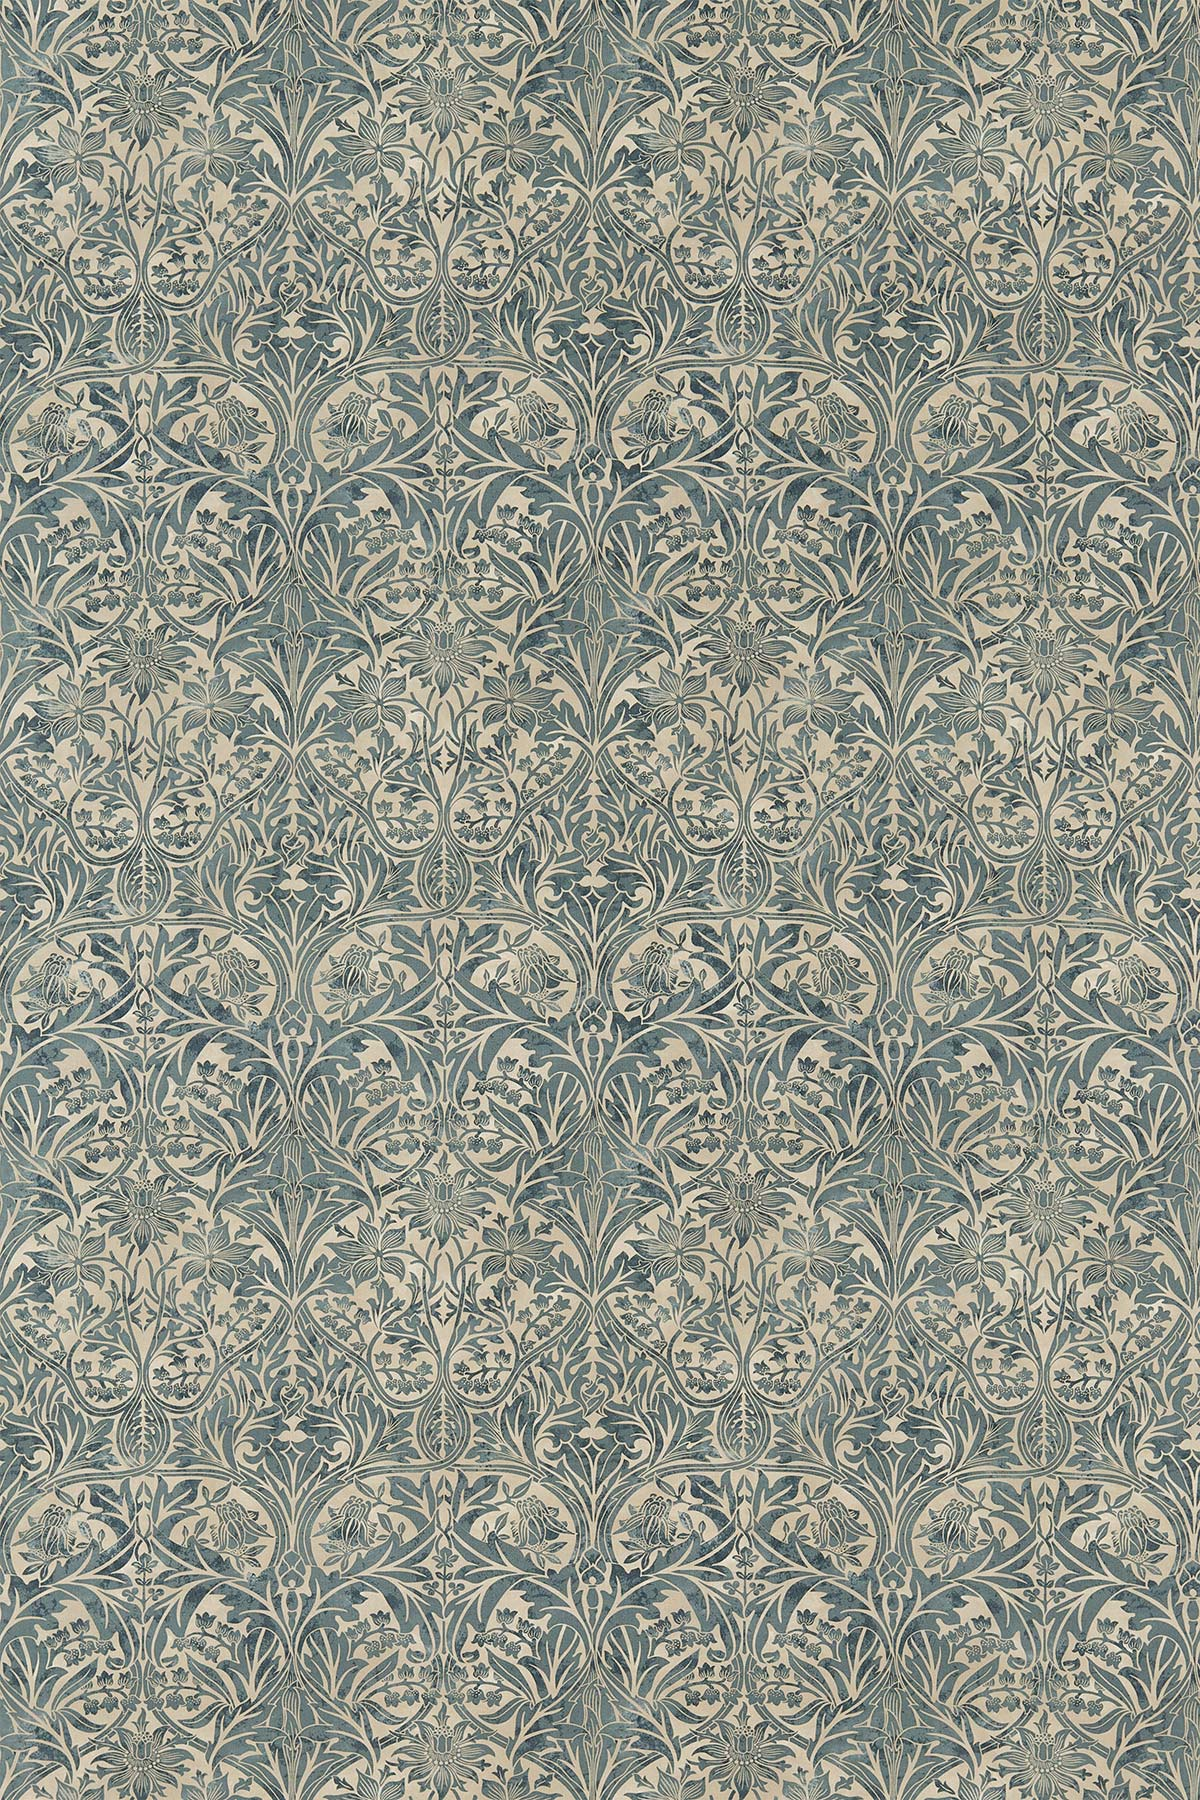 Bluebell Fabric - Seagreen / Vellum - by Morris